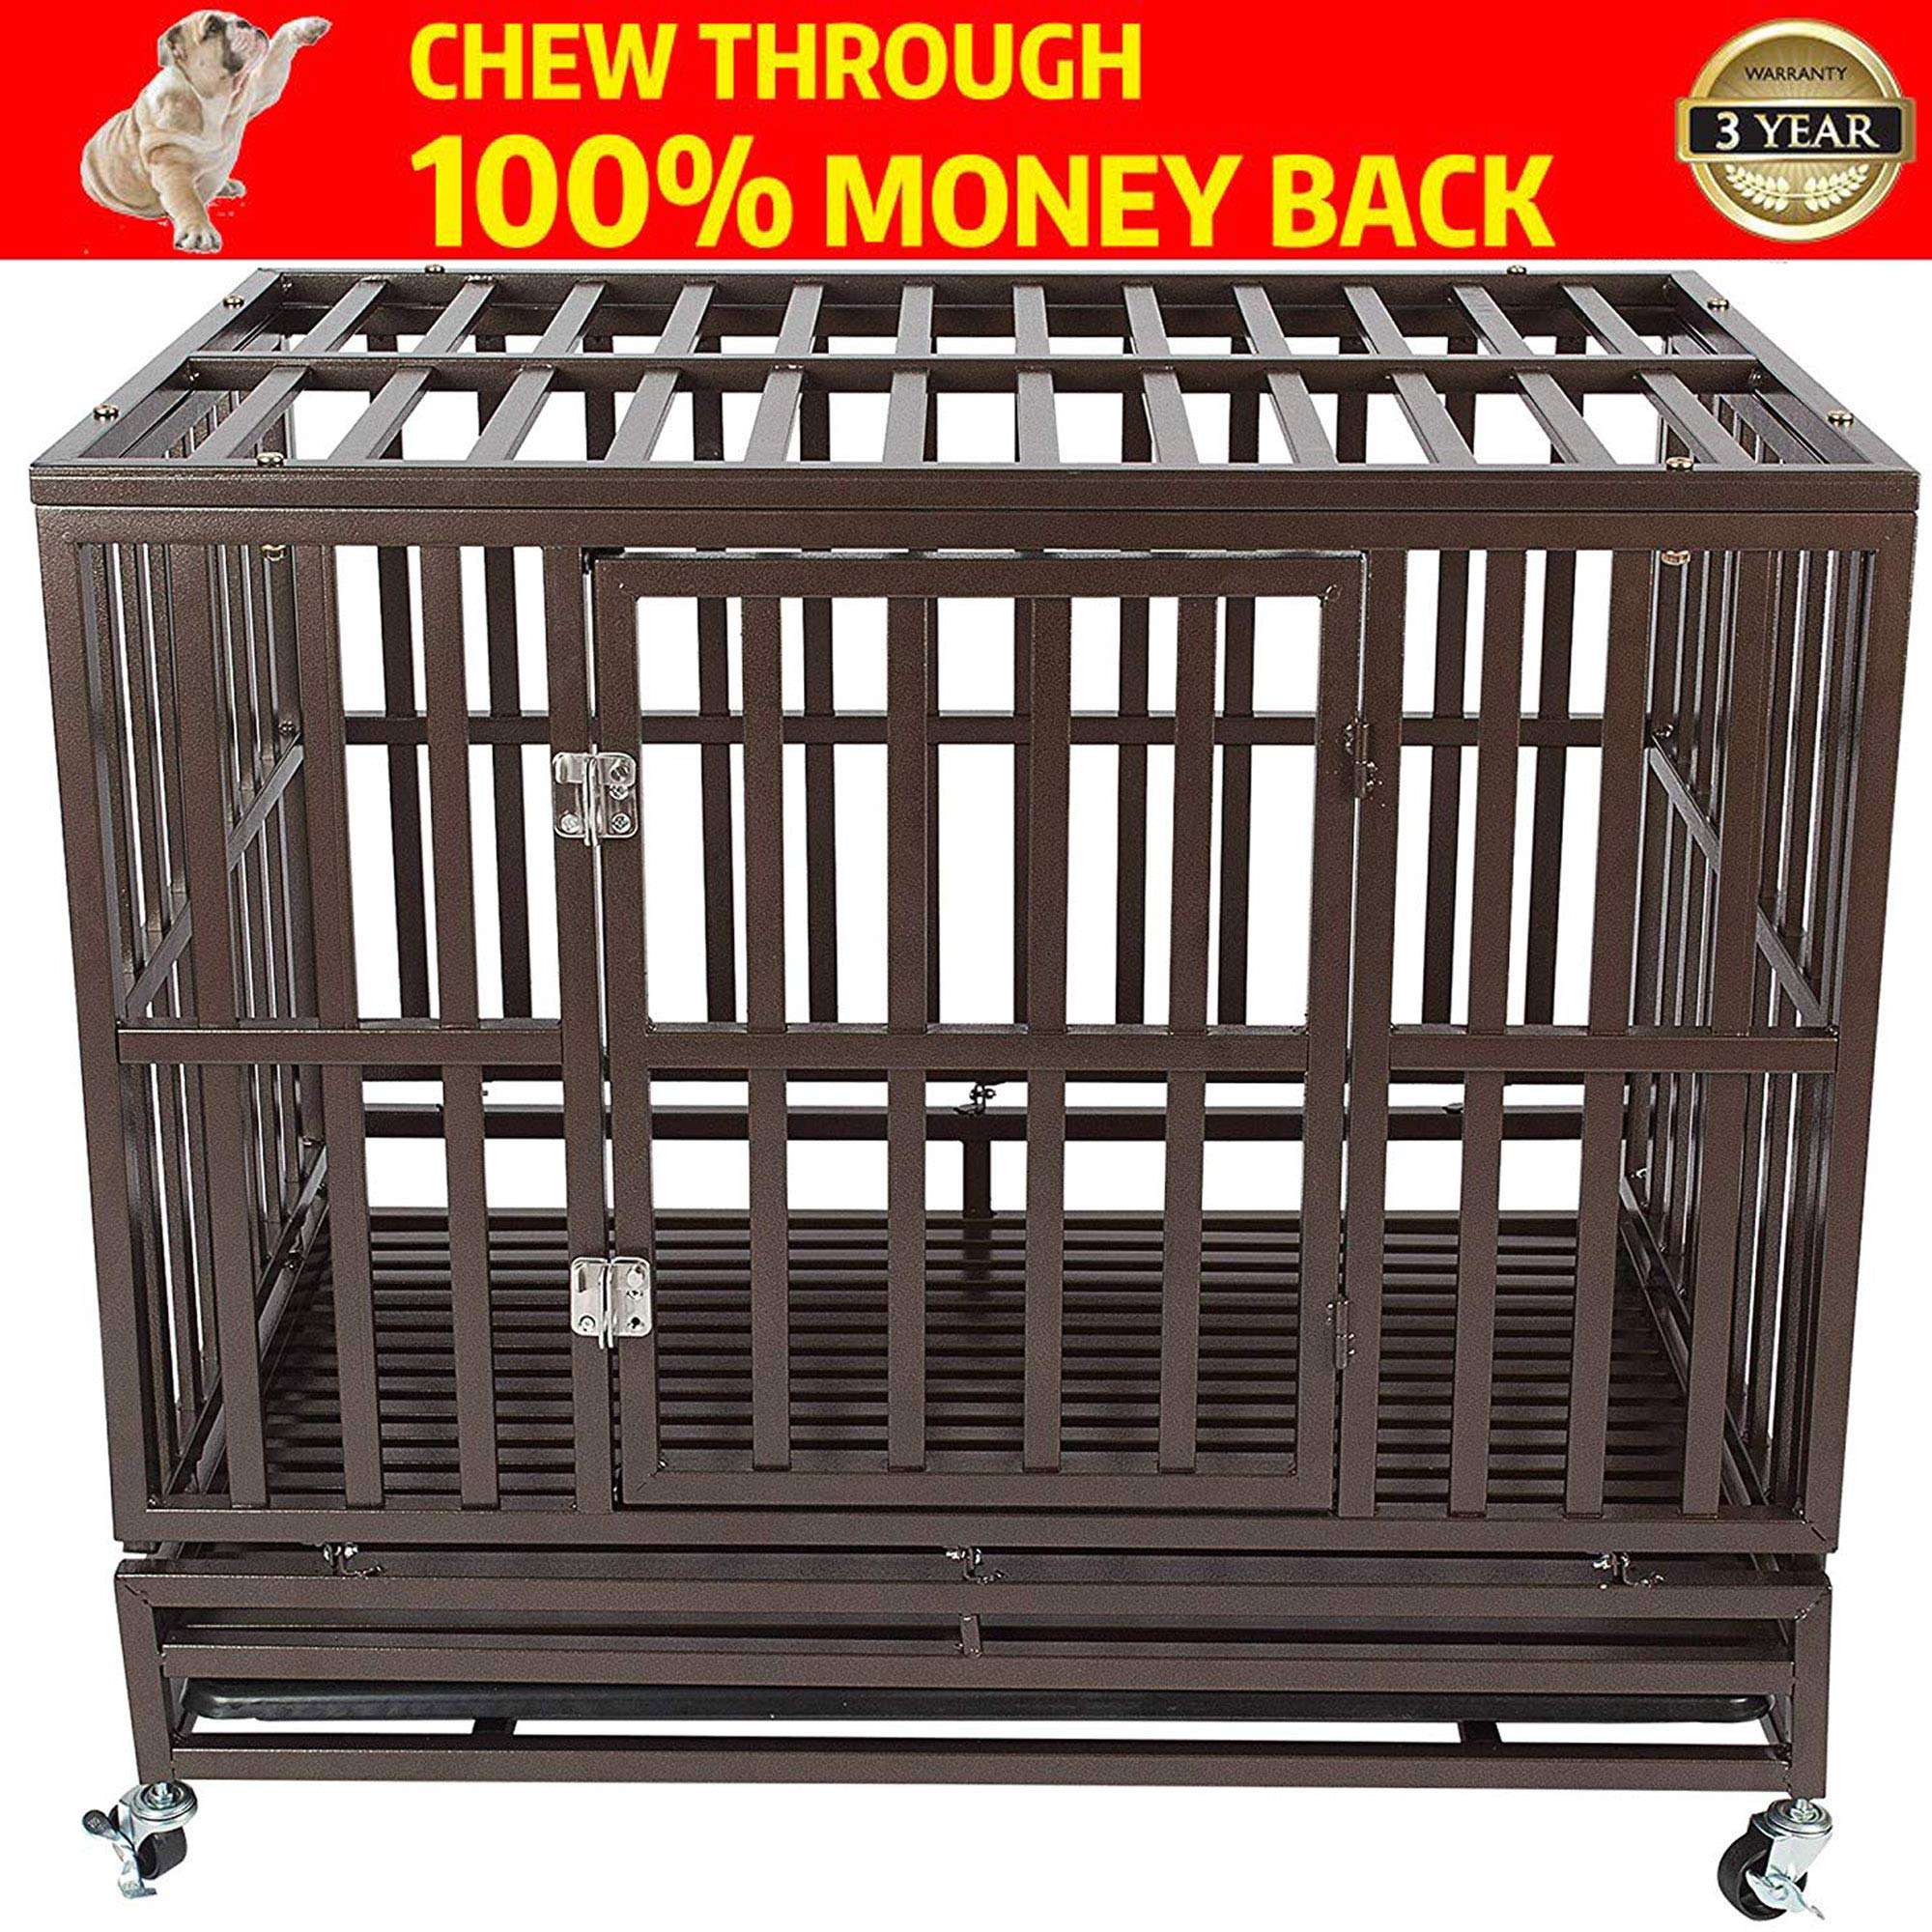 HAIGE PET Your Pet Nanny Heavy Duty Dog Cage Kennel Crate Playpen Metal Strong for Medium and Large Dogs Outdoor Waterproof with Lockable Wheels, Easy to Assemble, 42'' by HAIGE PET Your Pet Nanny